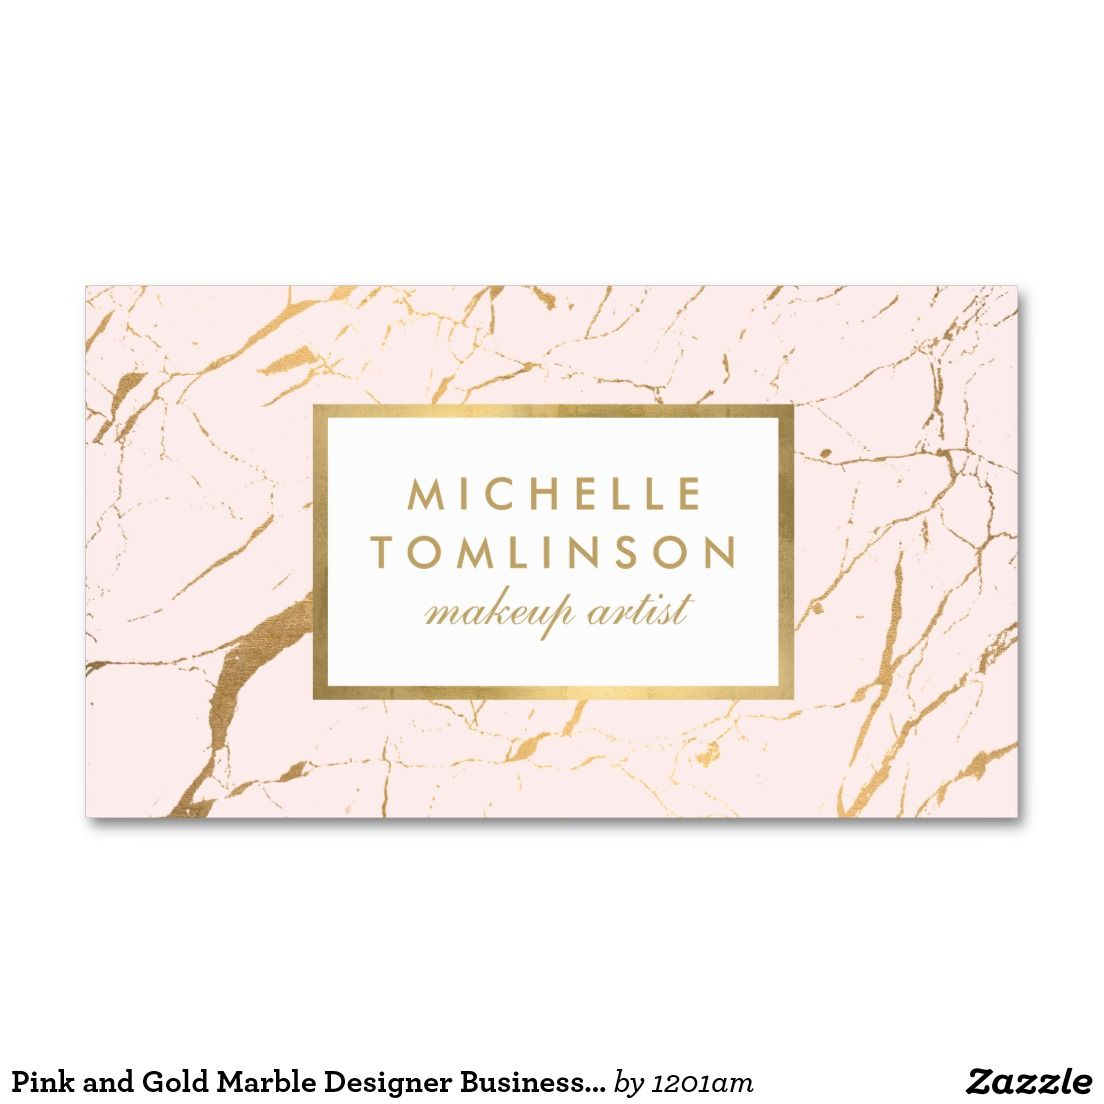 Pink and Gold Marble Designer Business Card | Gold marble, Business ...